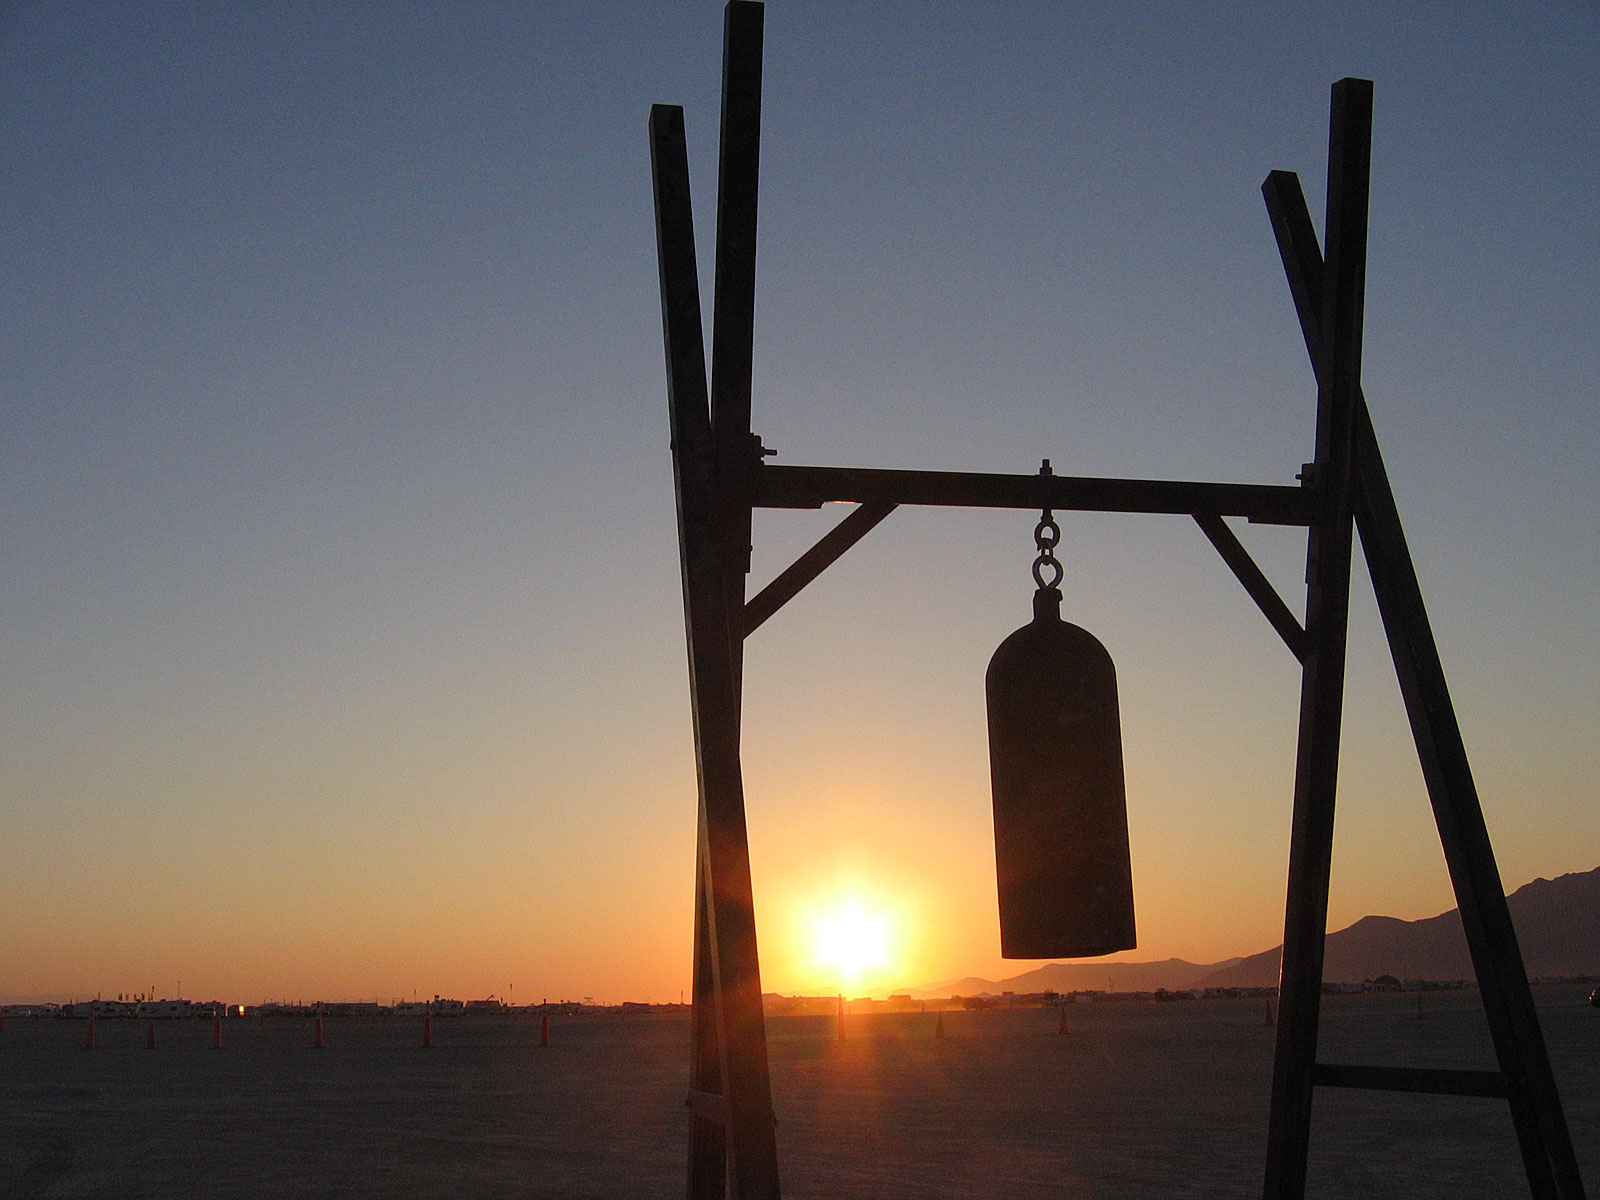 The welcome bell